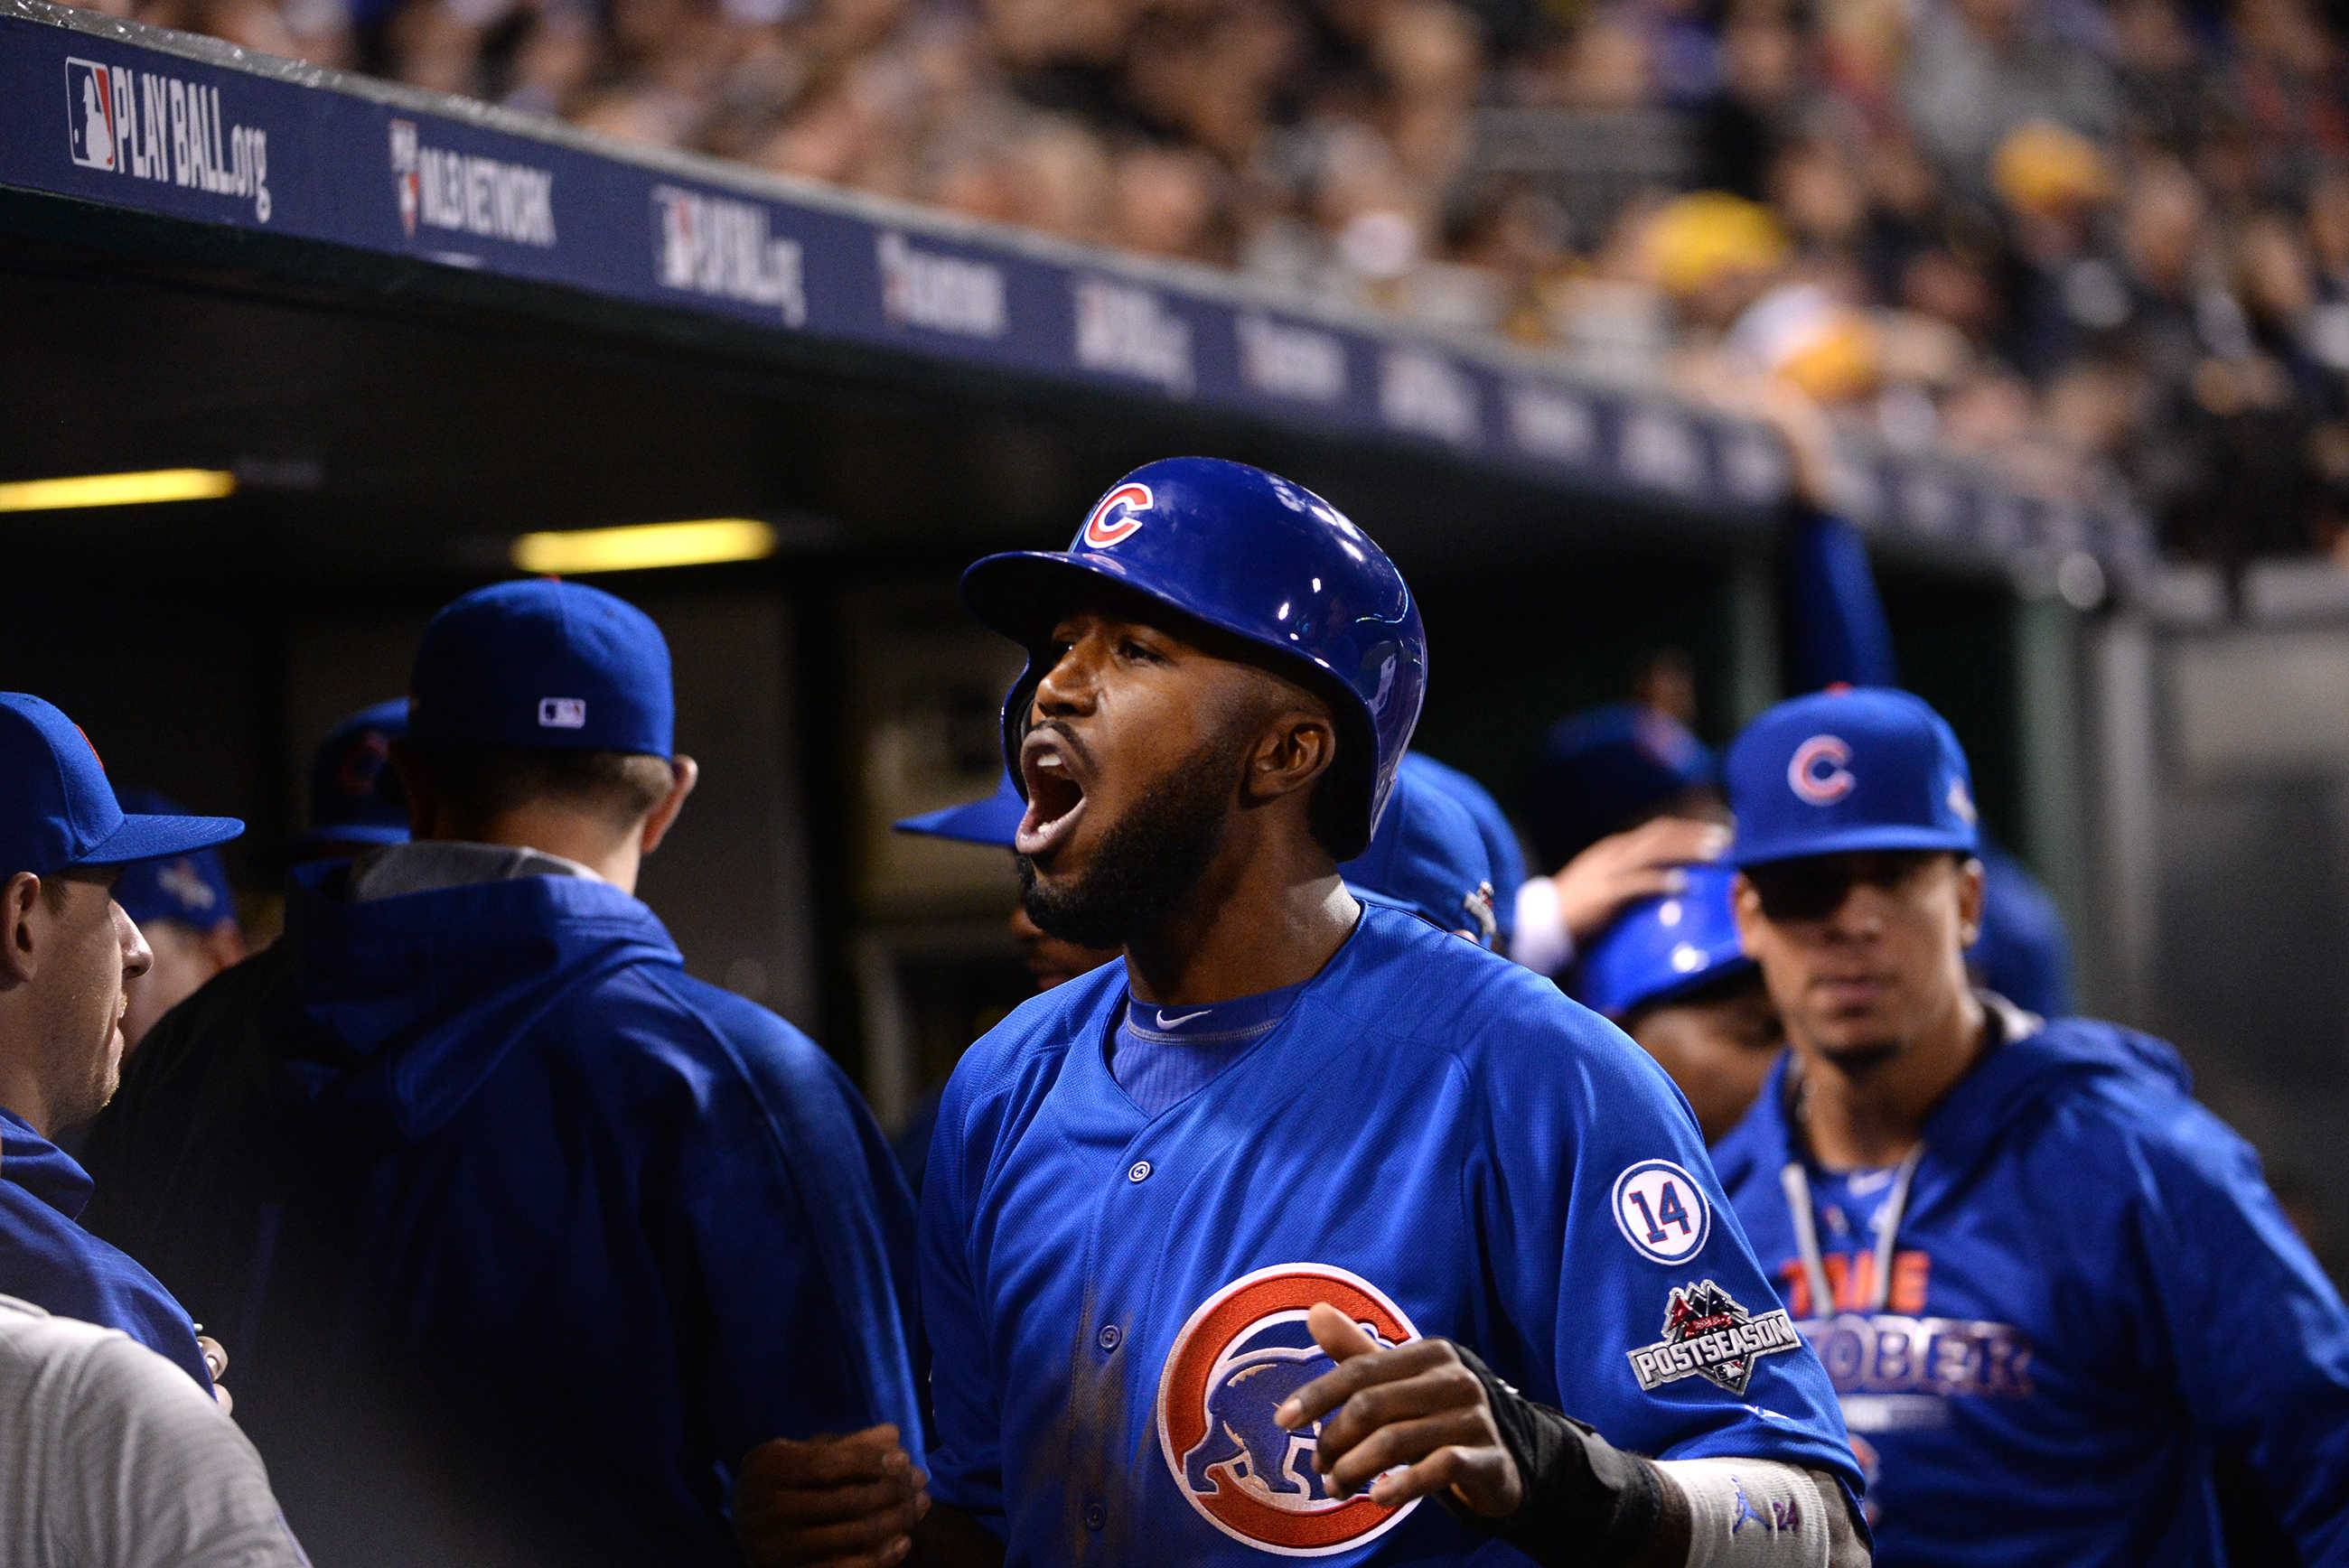 Imrem: Cubs magical mystery tour ready for St. Louis